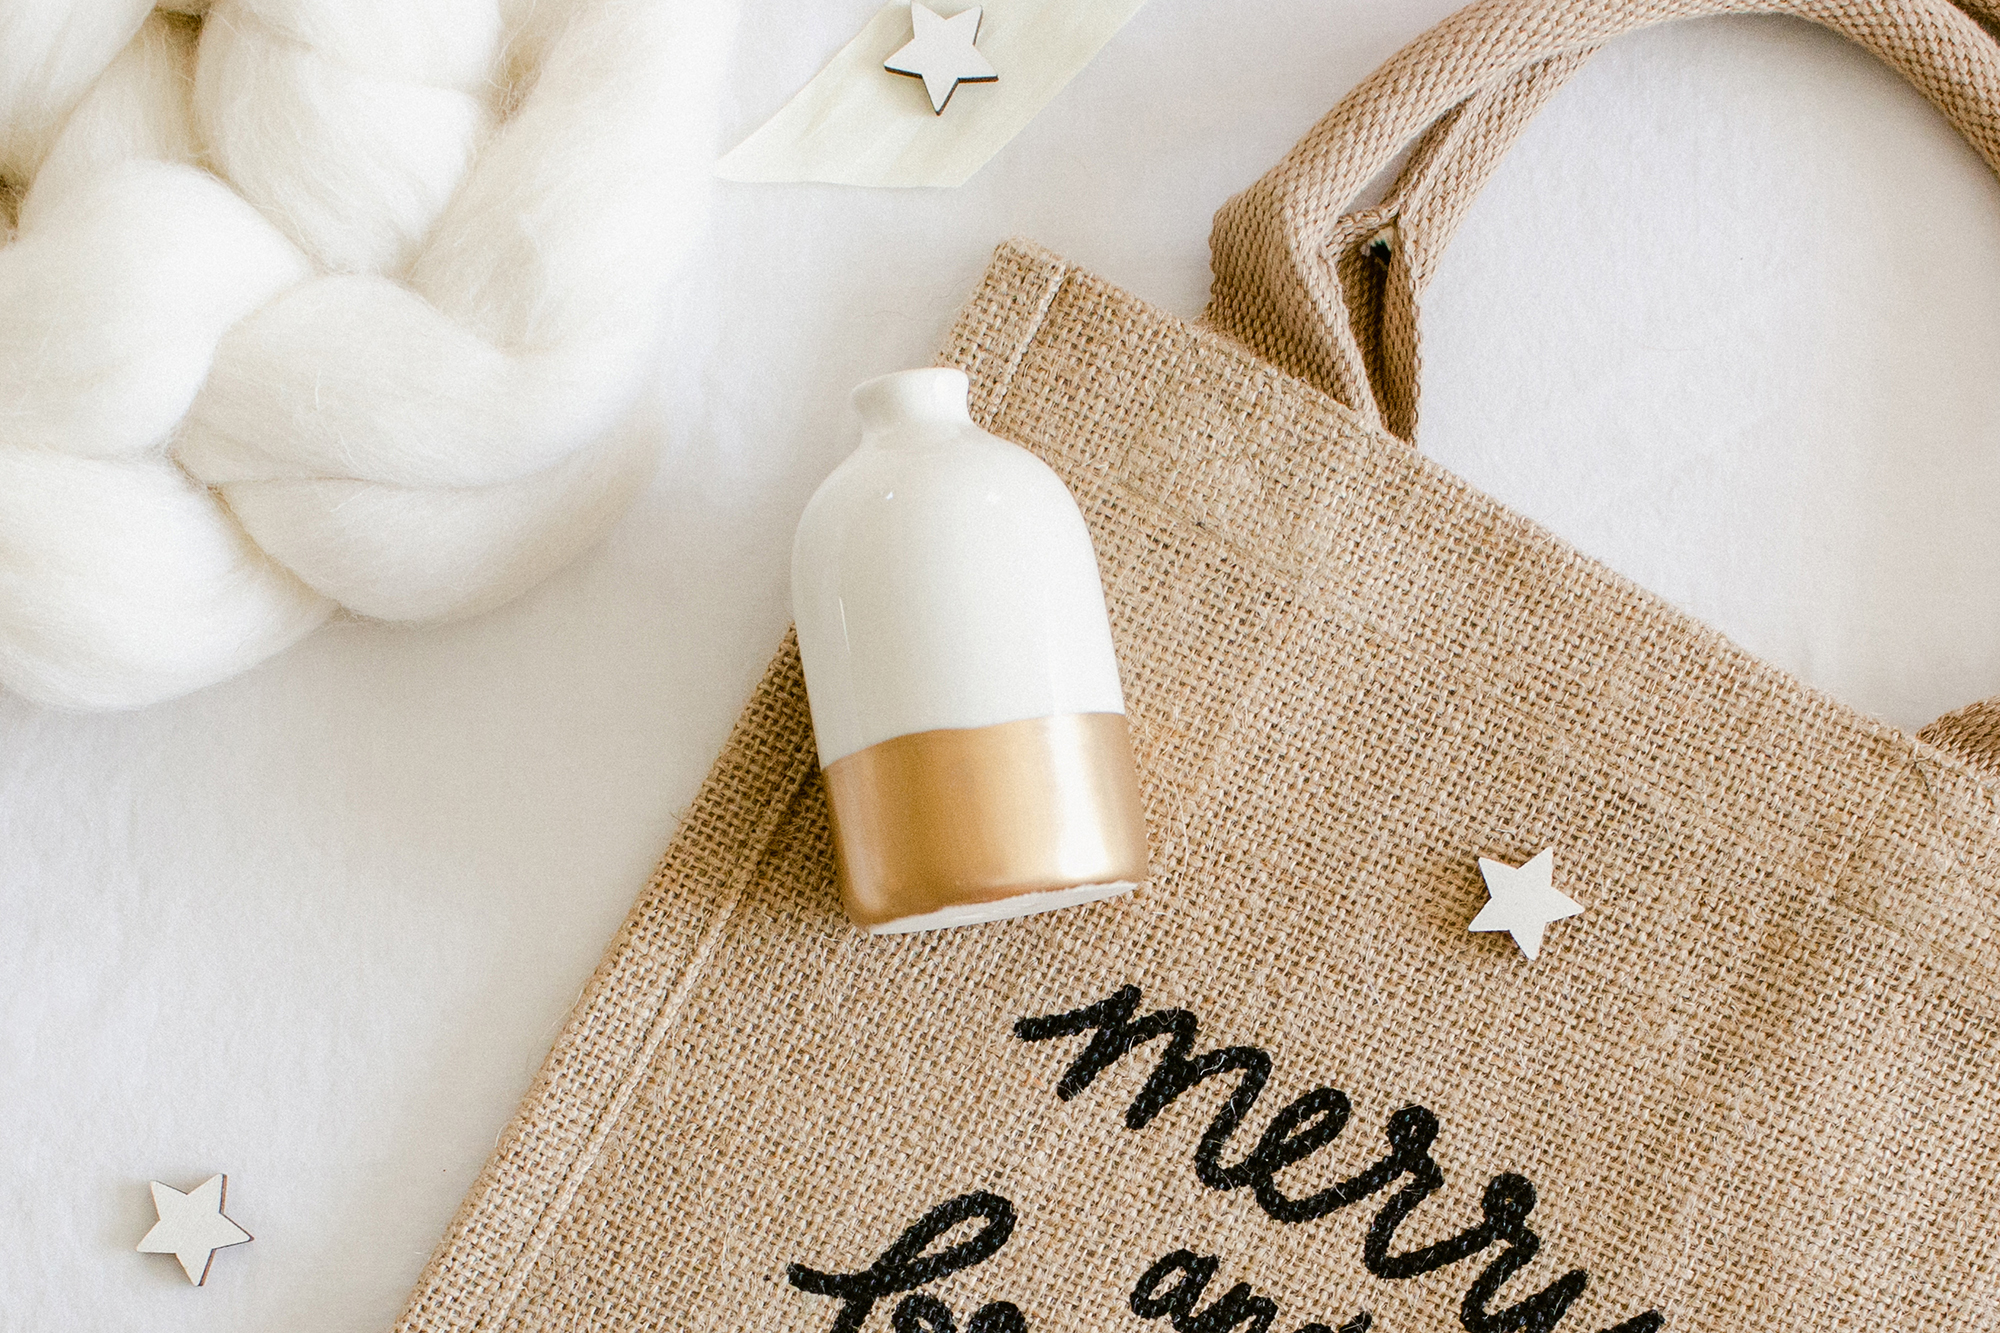 Shop My Lauren Conrad x Amazon Handmade Holiday Gift Guide